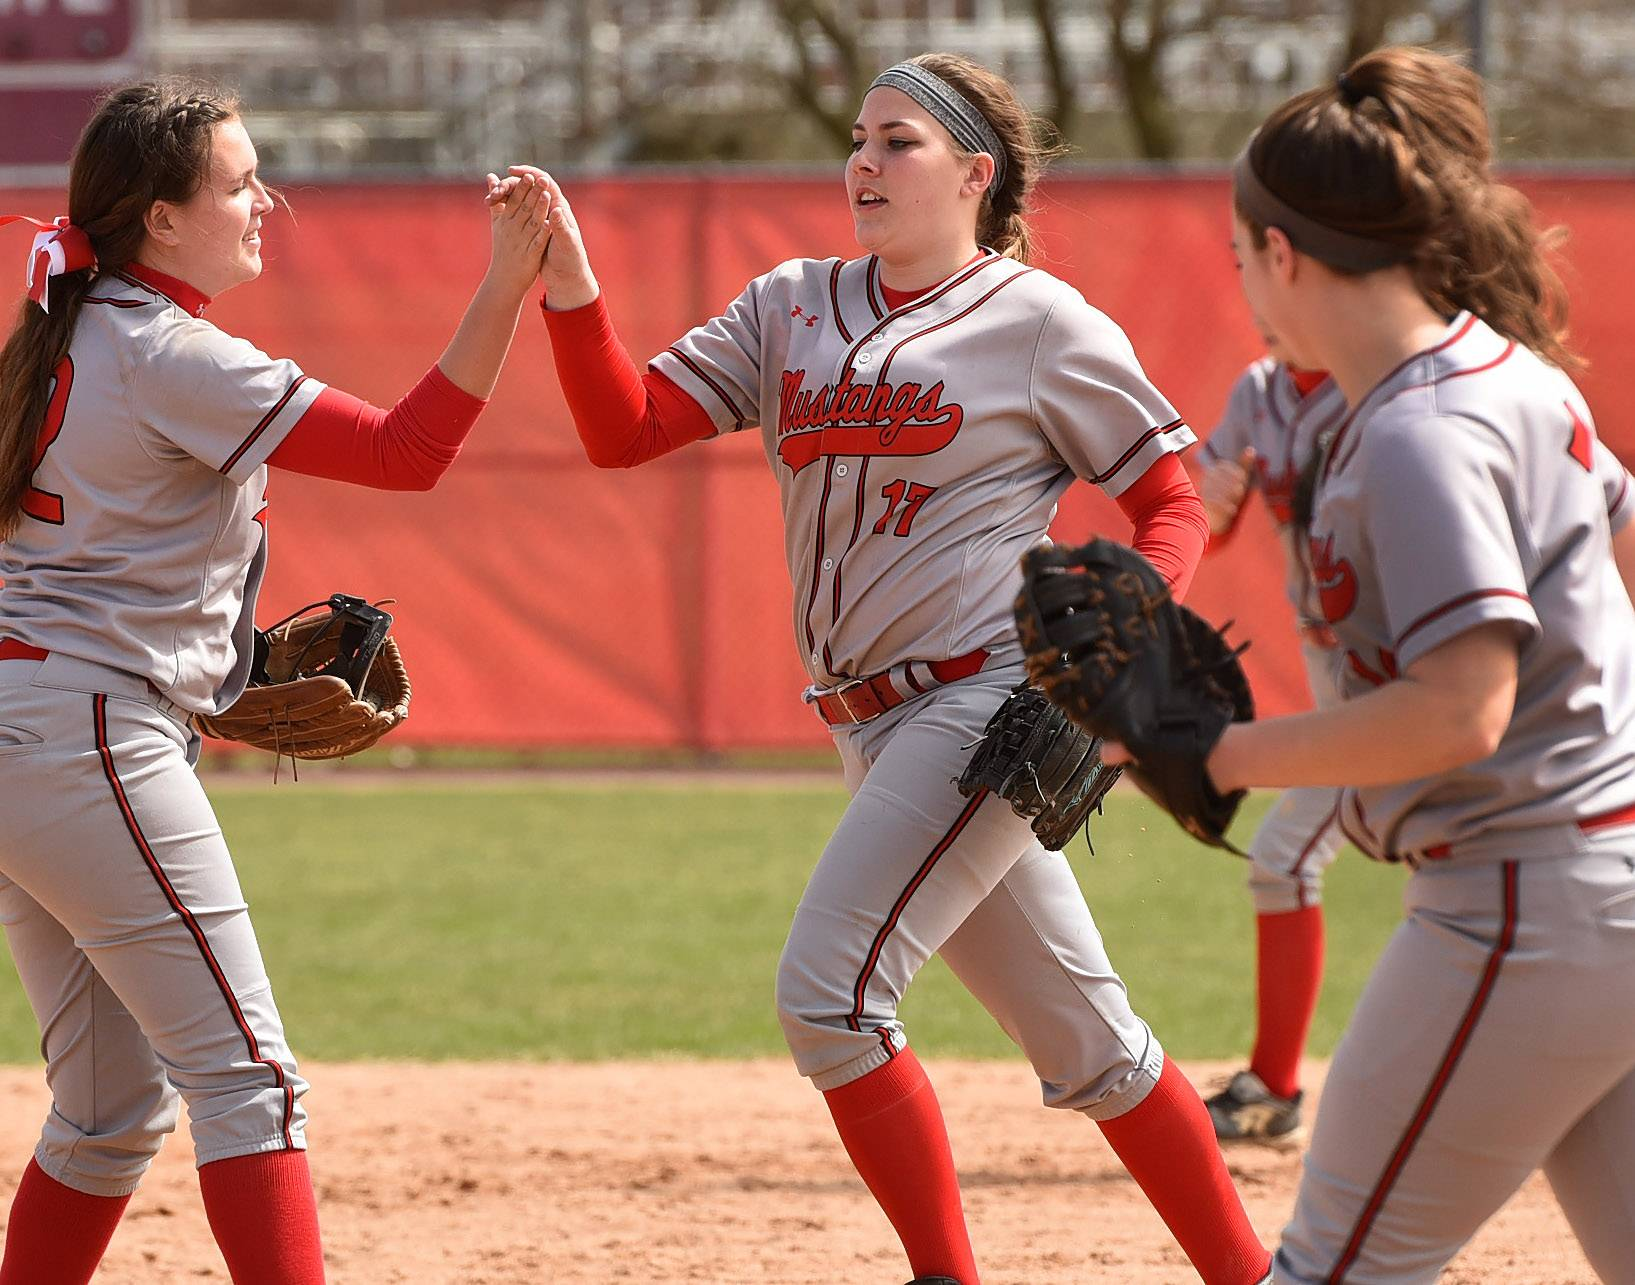 Mundelein's Breanna Adams is congratulated after forcing out Elk Grove's Sabra Morton during softball at Barrington's Fields of Dreams.